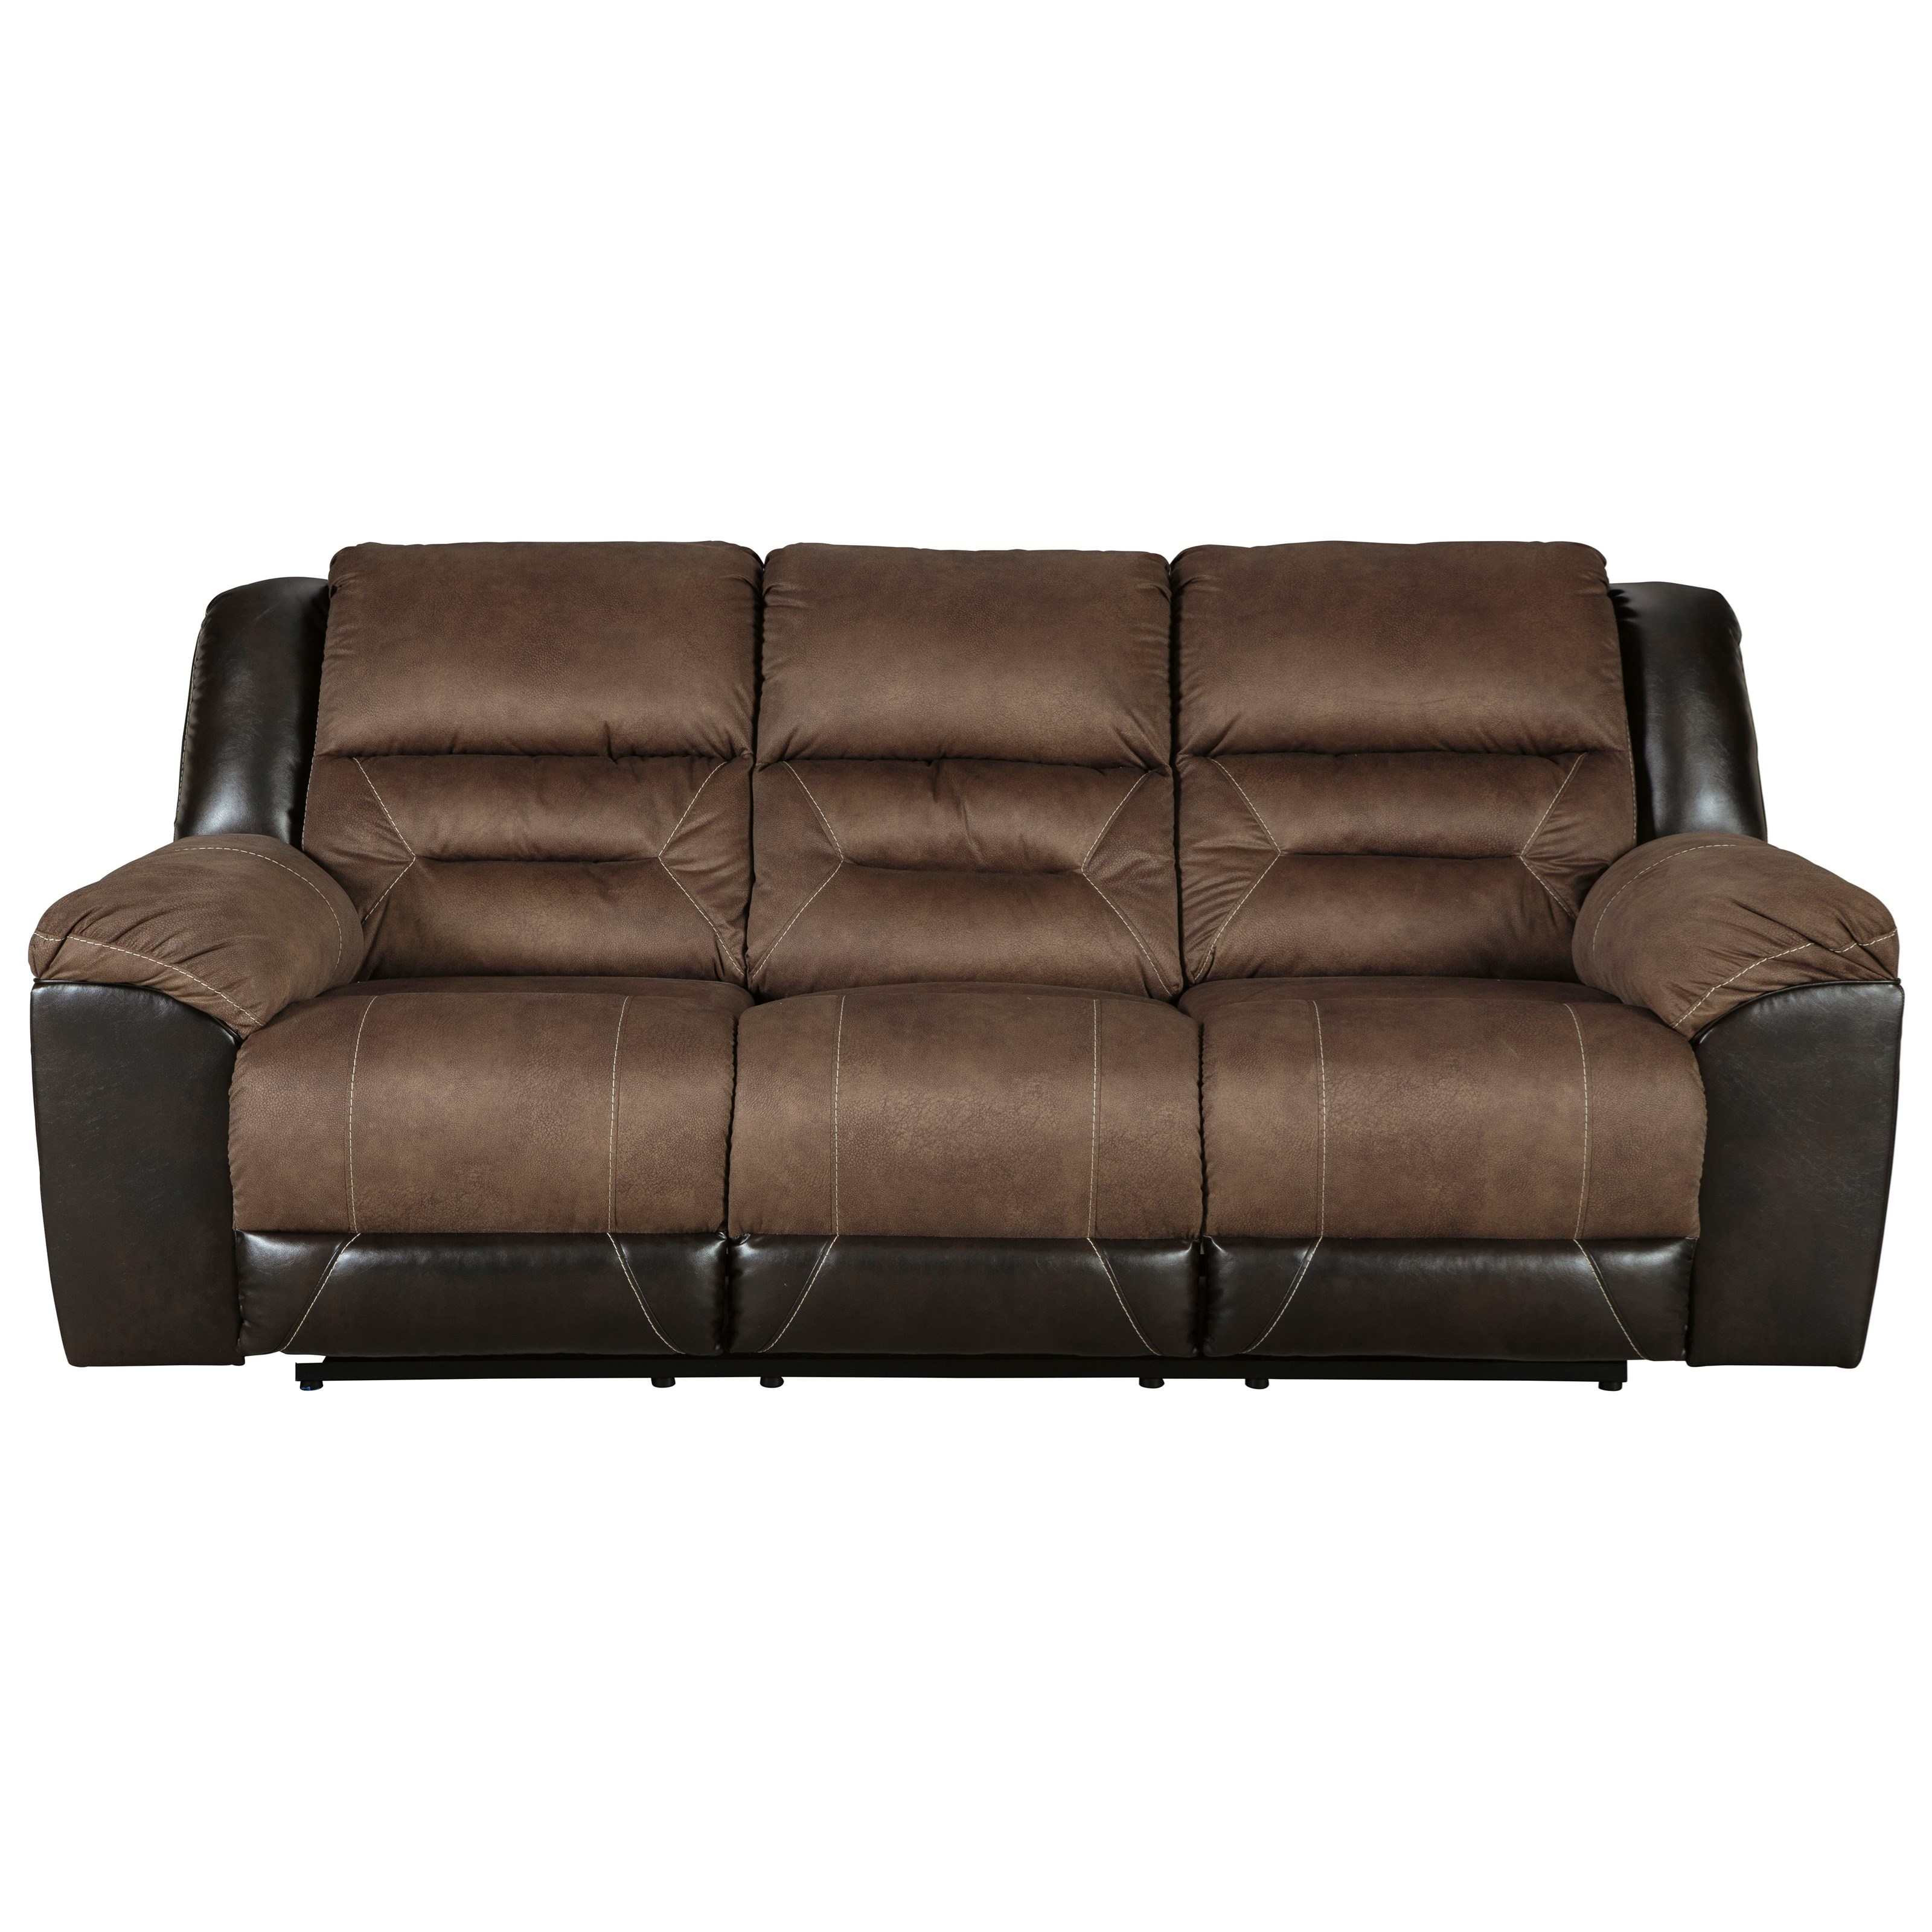 StyleLine DALLAS 2910188 Casual Reclining Sofa With Pillow